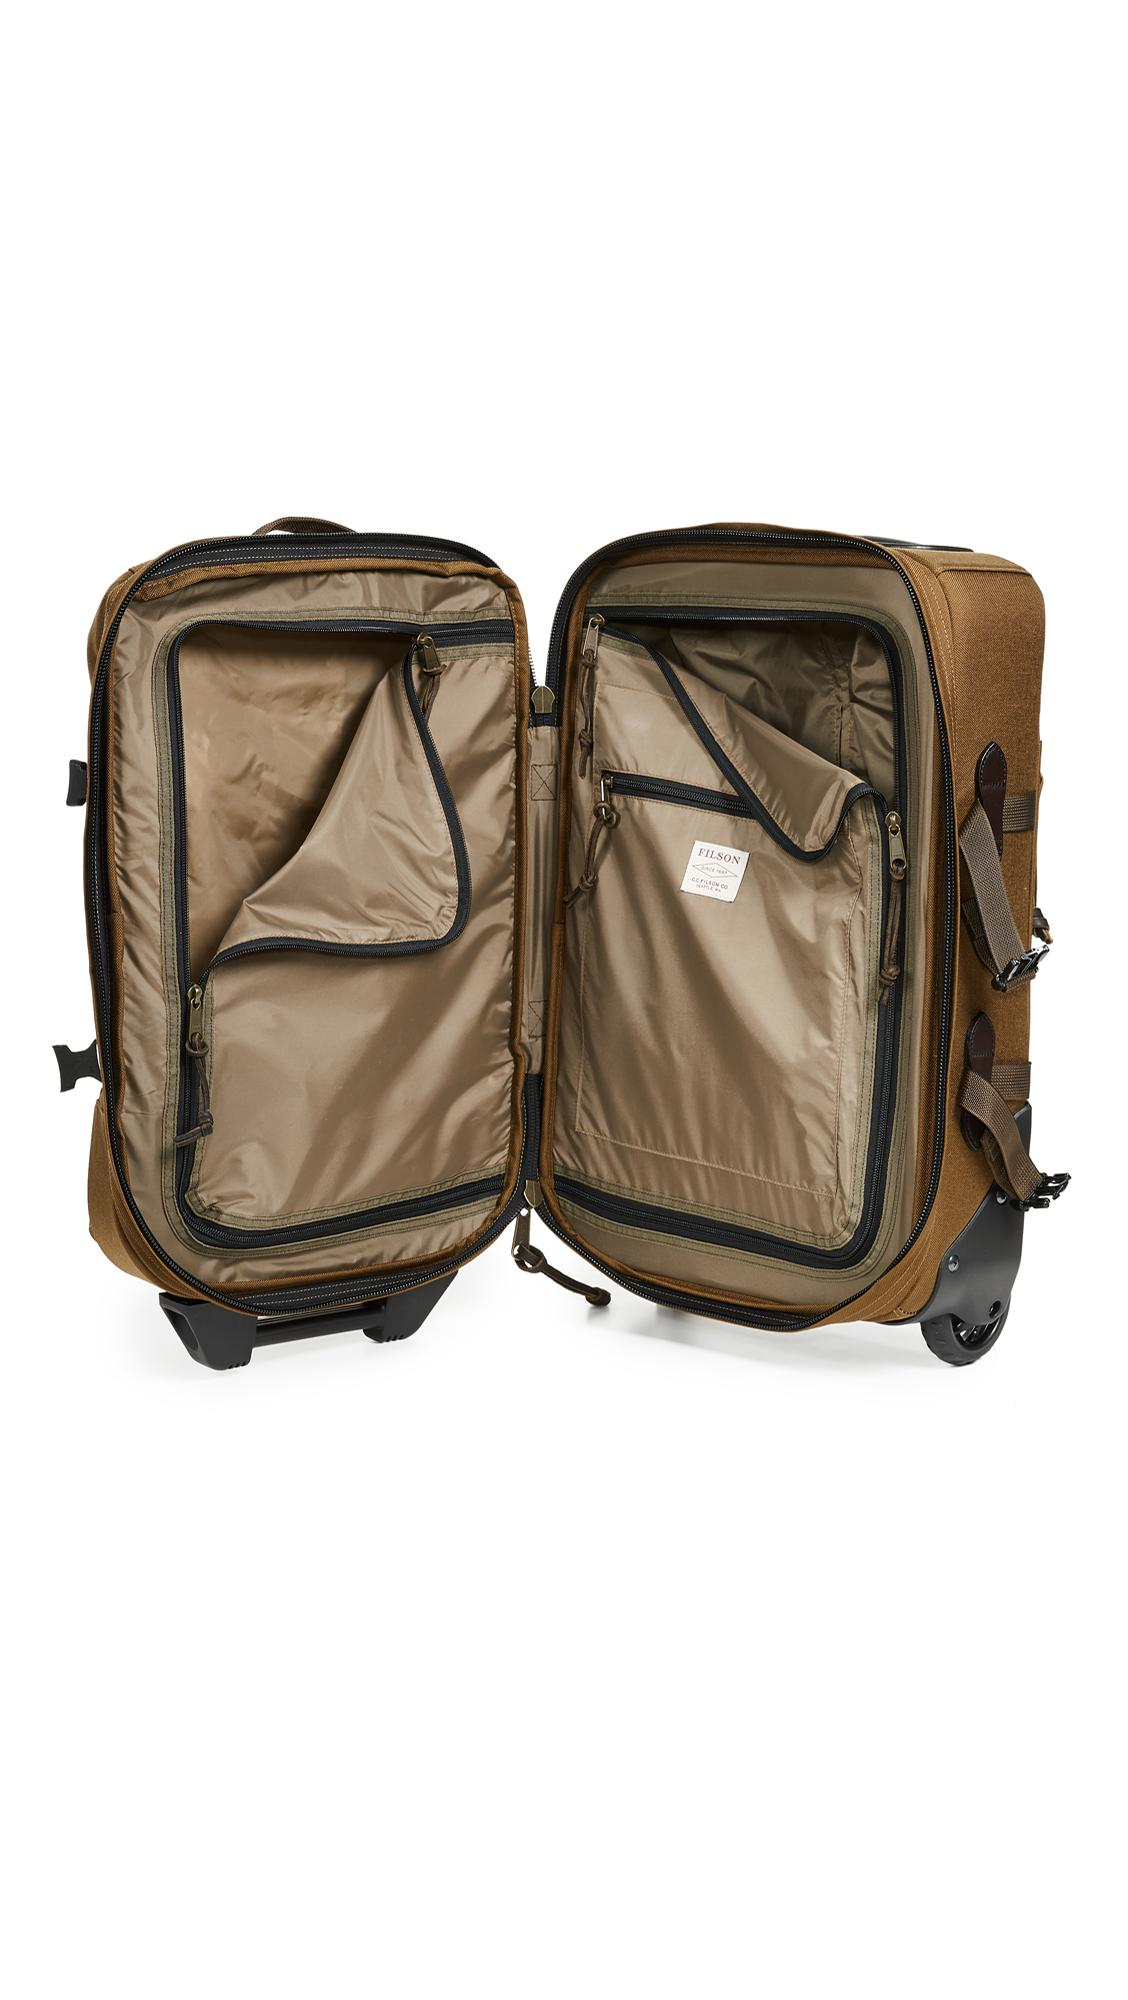 b6be6fca8d Filson - Multicolor Dryden 2 Wheel Carry On Suitcase for Men - Lyst. View  fullscreen